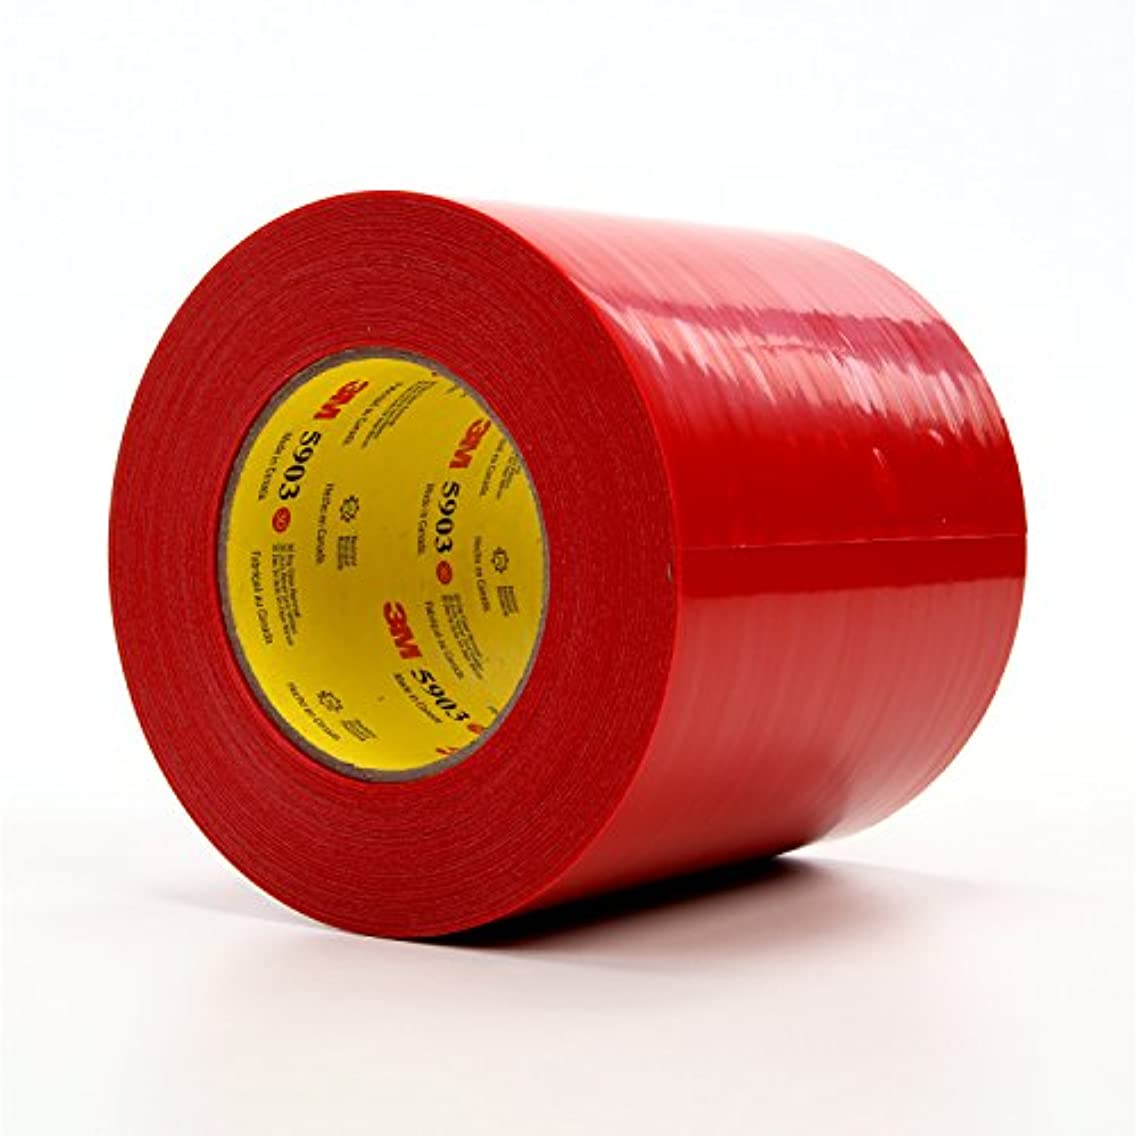 3M 07591-case Outdoor Maskingpoly Tape, 5 in x 60 yd 7.5 mil, 5903, Polyethylene, Red (Pack of 8)